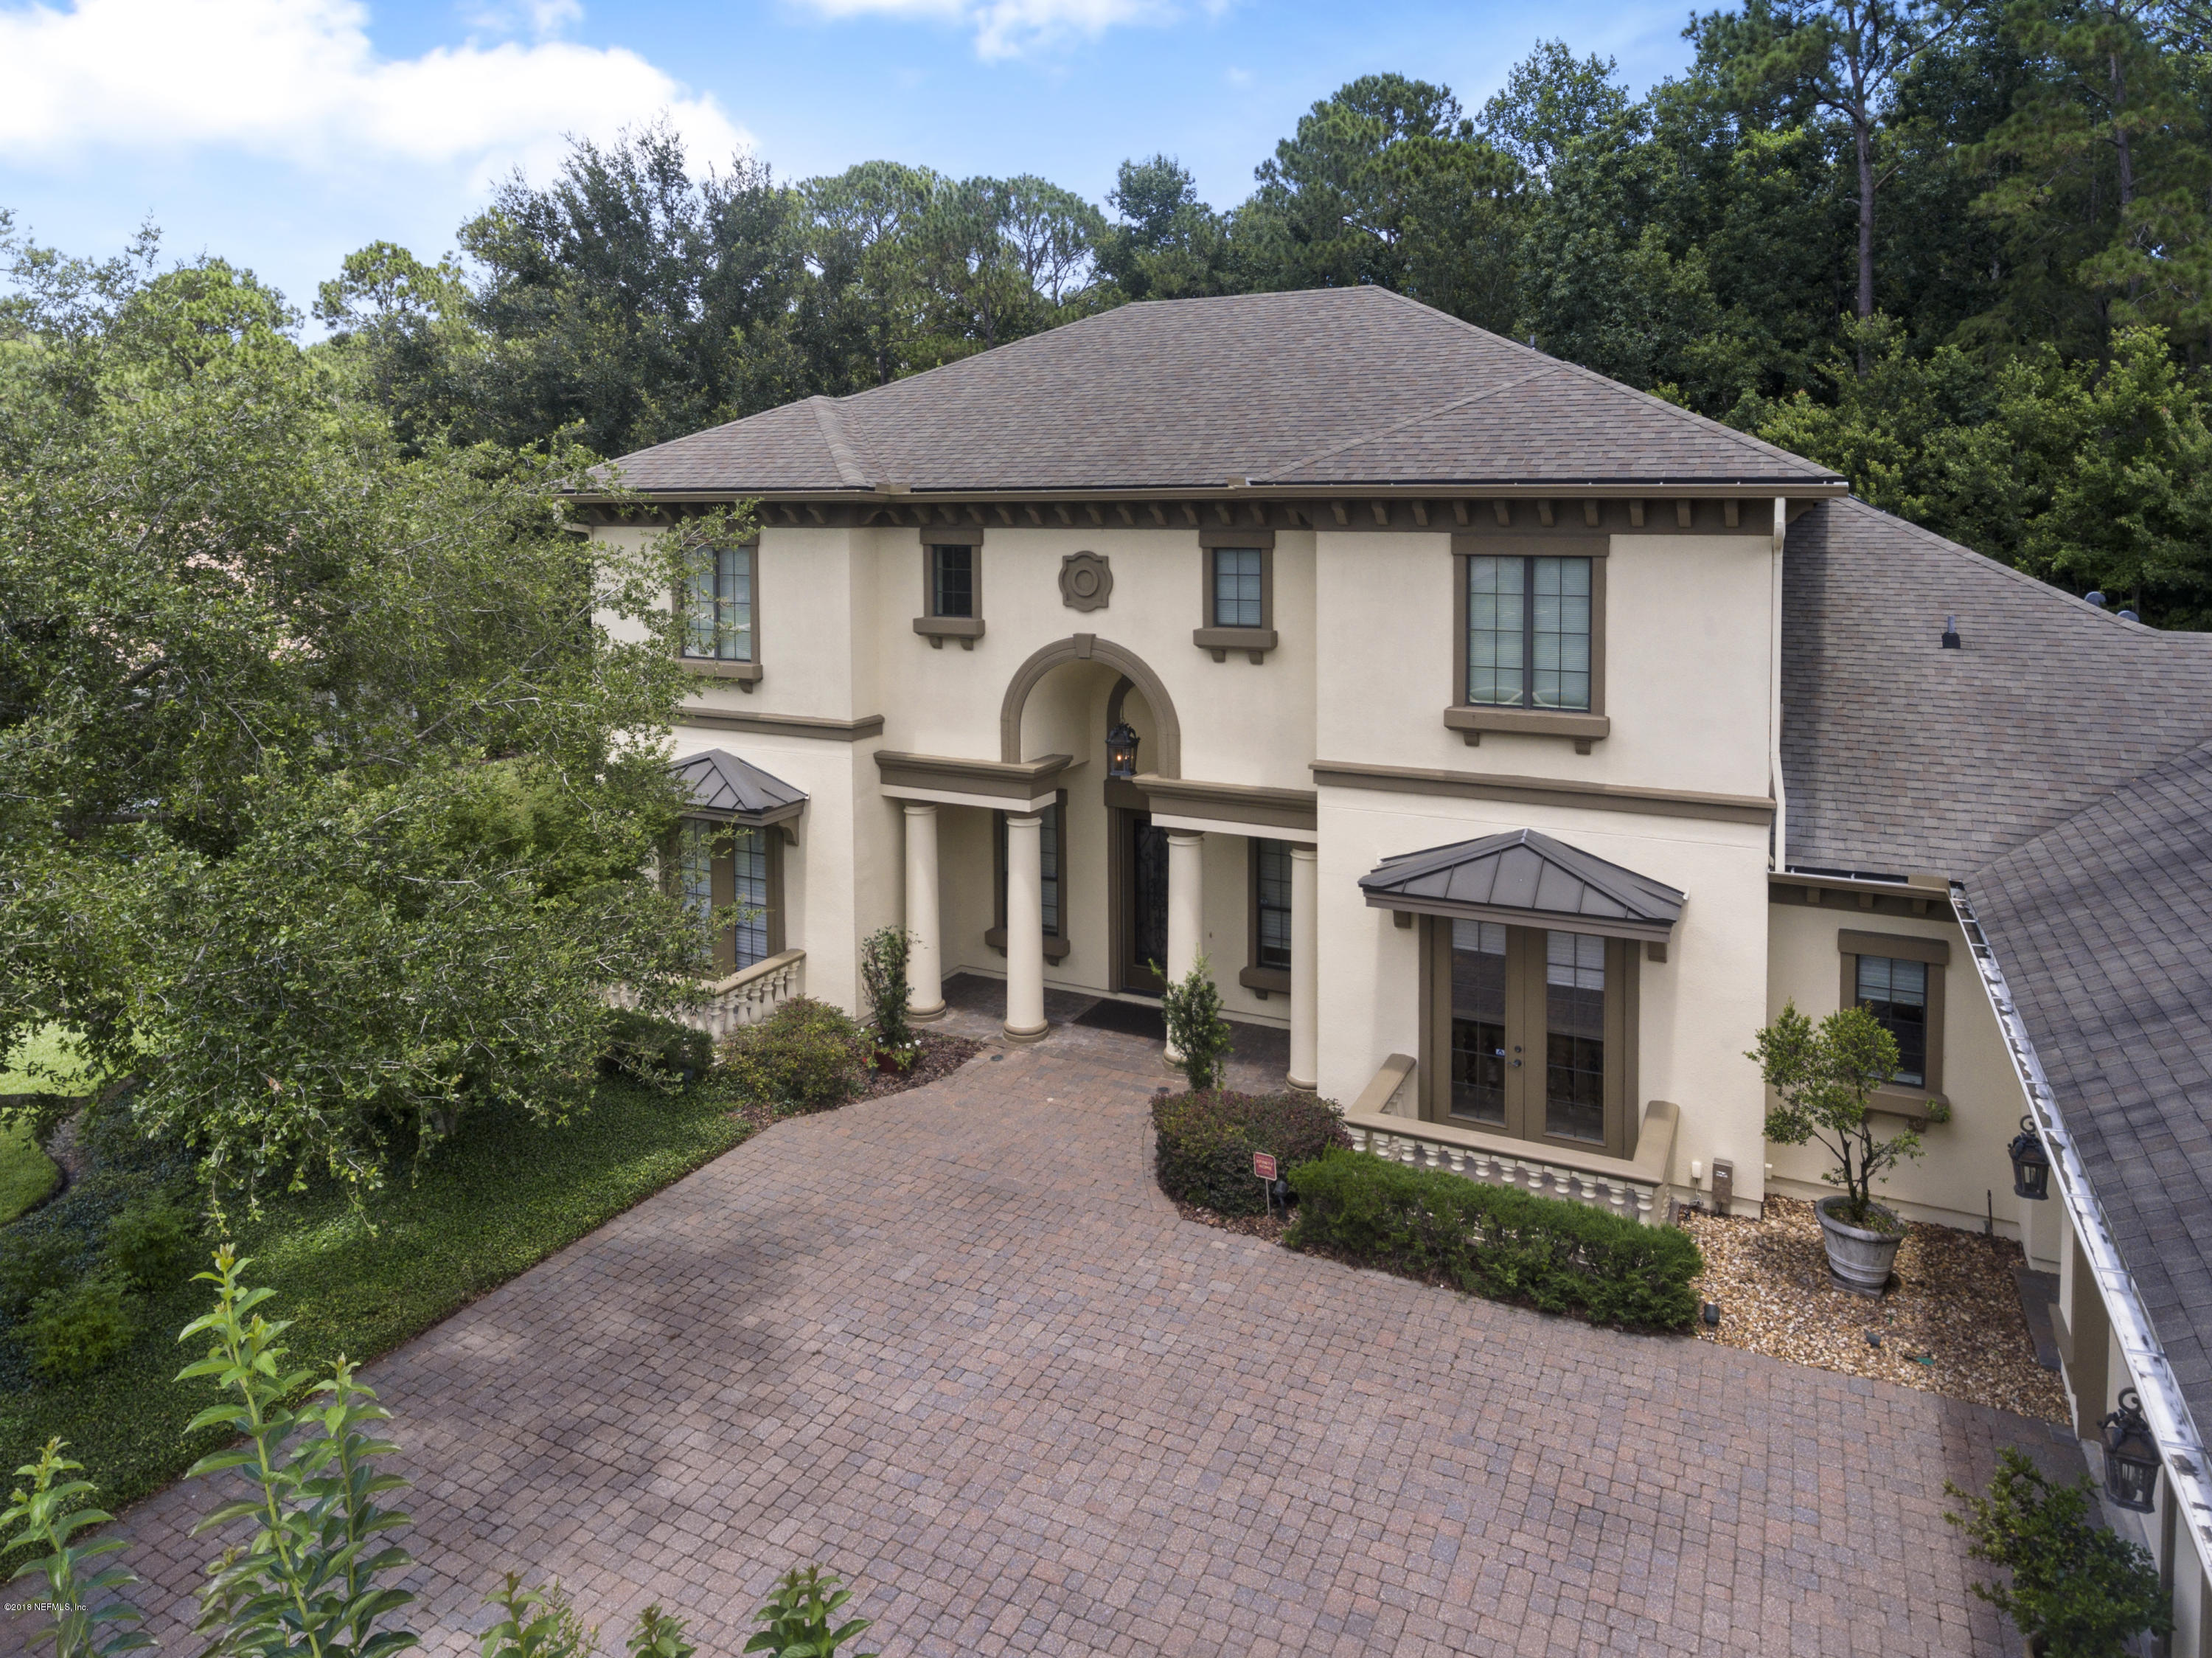 2645 OAKGROVE, ST AUGUSTINE, FLORIDA 32092, 5 Bedrooms Bedrooms, ,5 BathroomsBathrooms,Residential - single family,For sale,OAKGROVE,945299